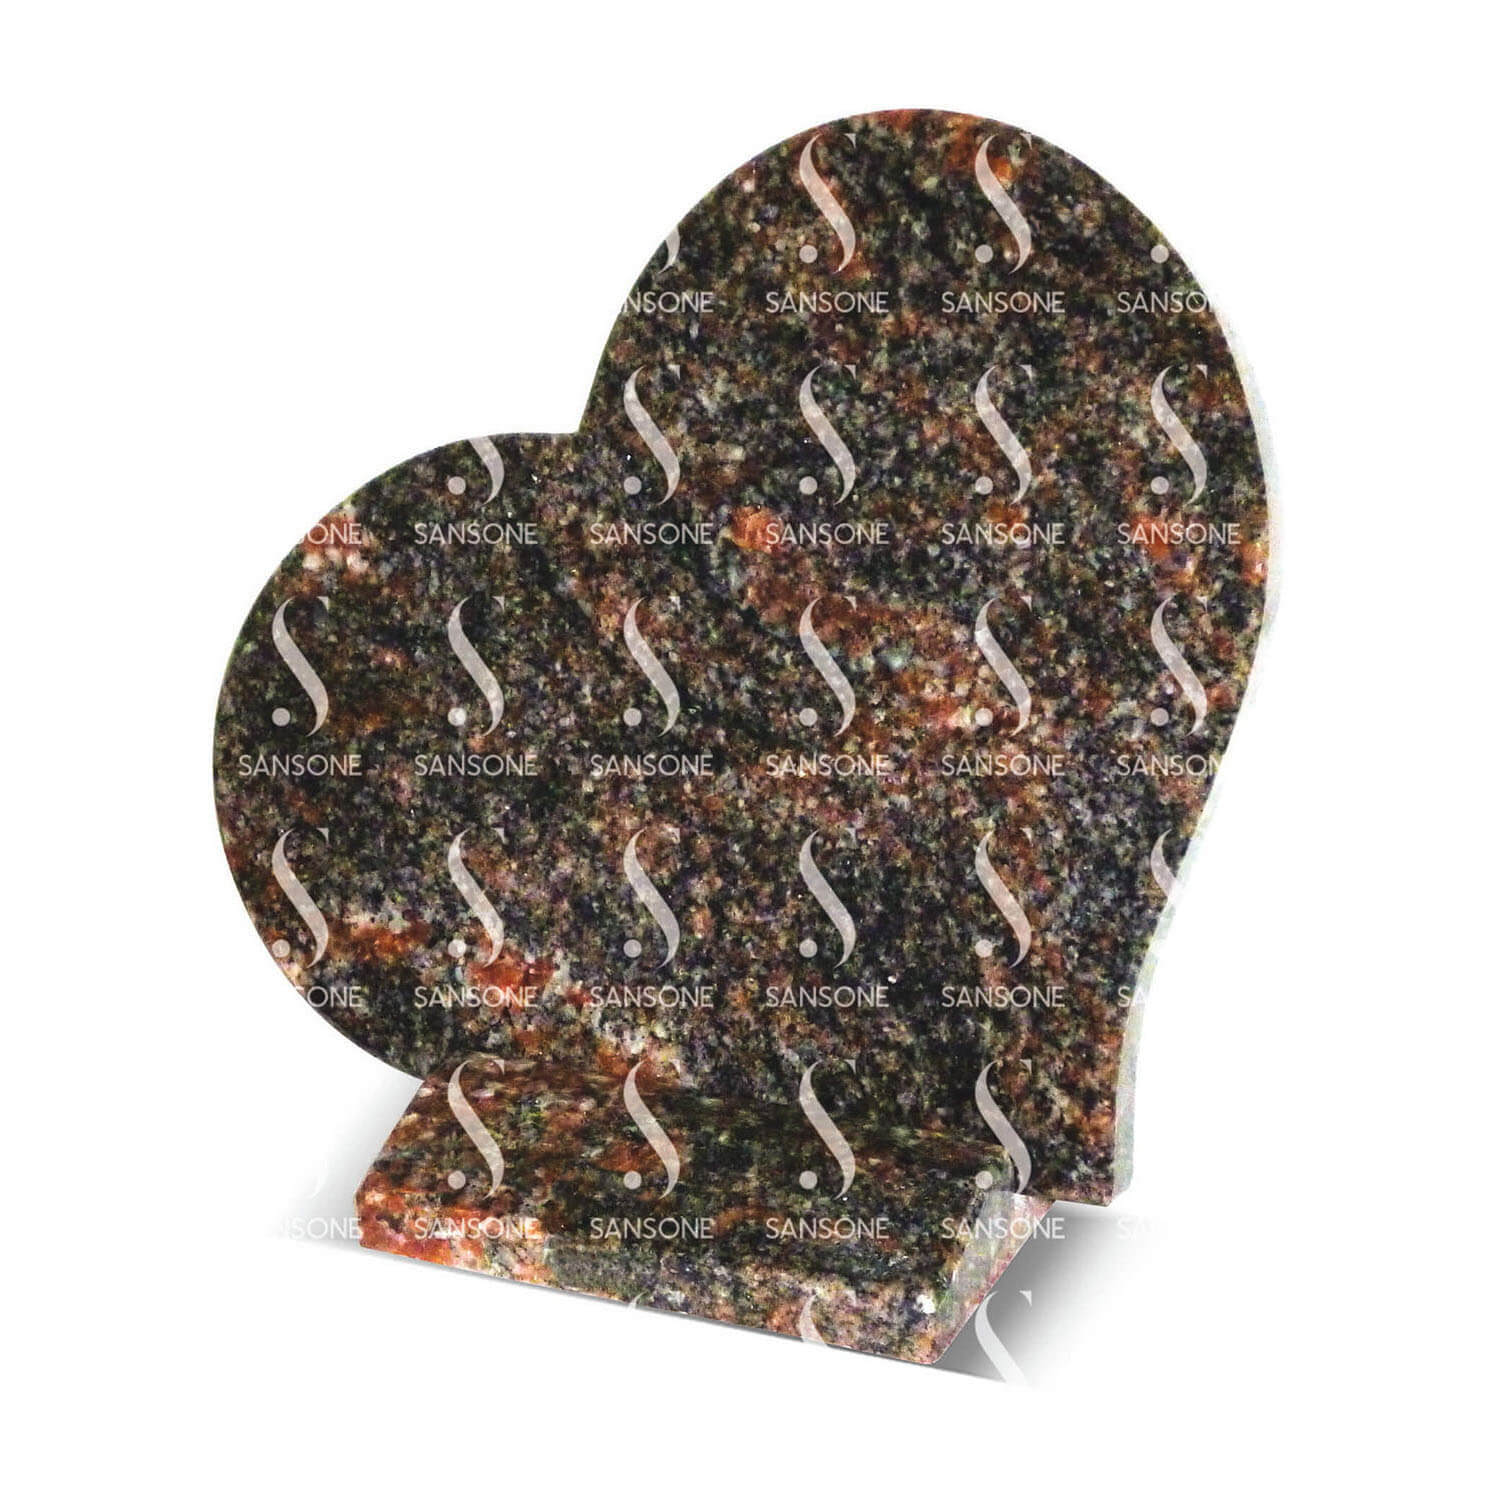 plc plaque coeur en granit avec socle sansone origine. Black Bedroom Furniture Sets. Home Design Ideas